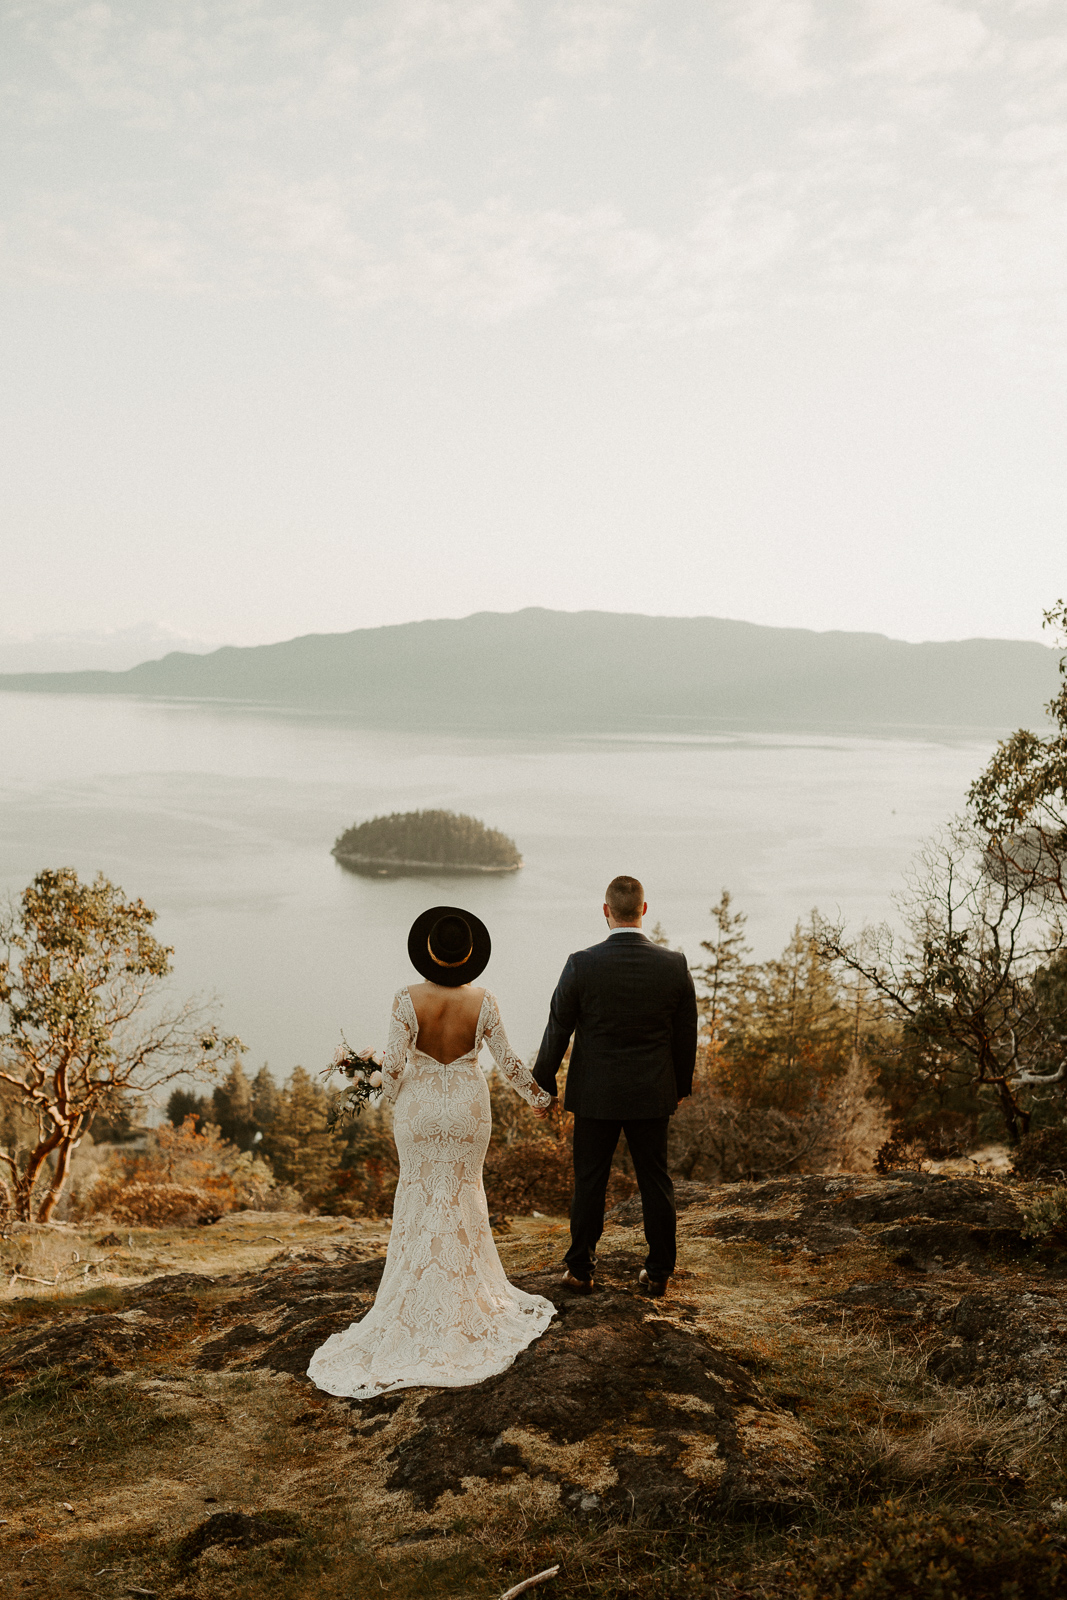 Luke Lambertson Photo_BritishColumbia_Canada_AdventurousCouple_Elopement_IMG-7928.jpg